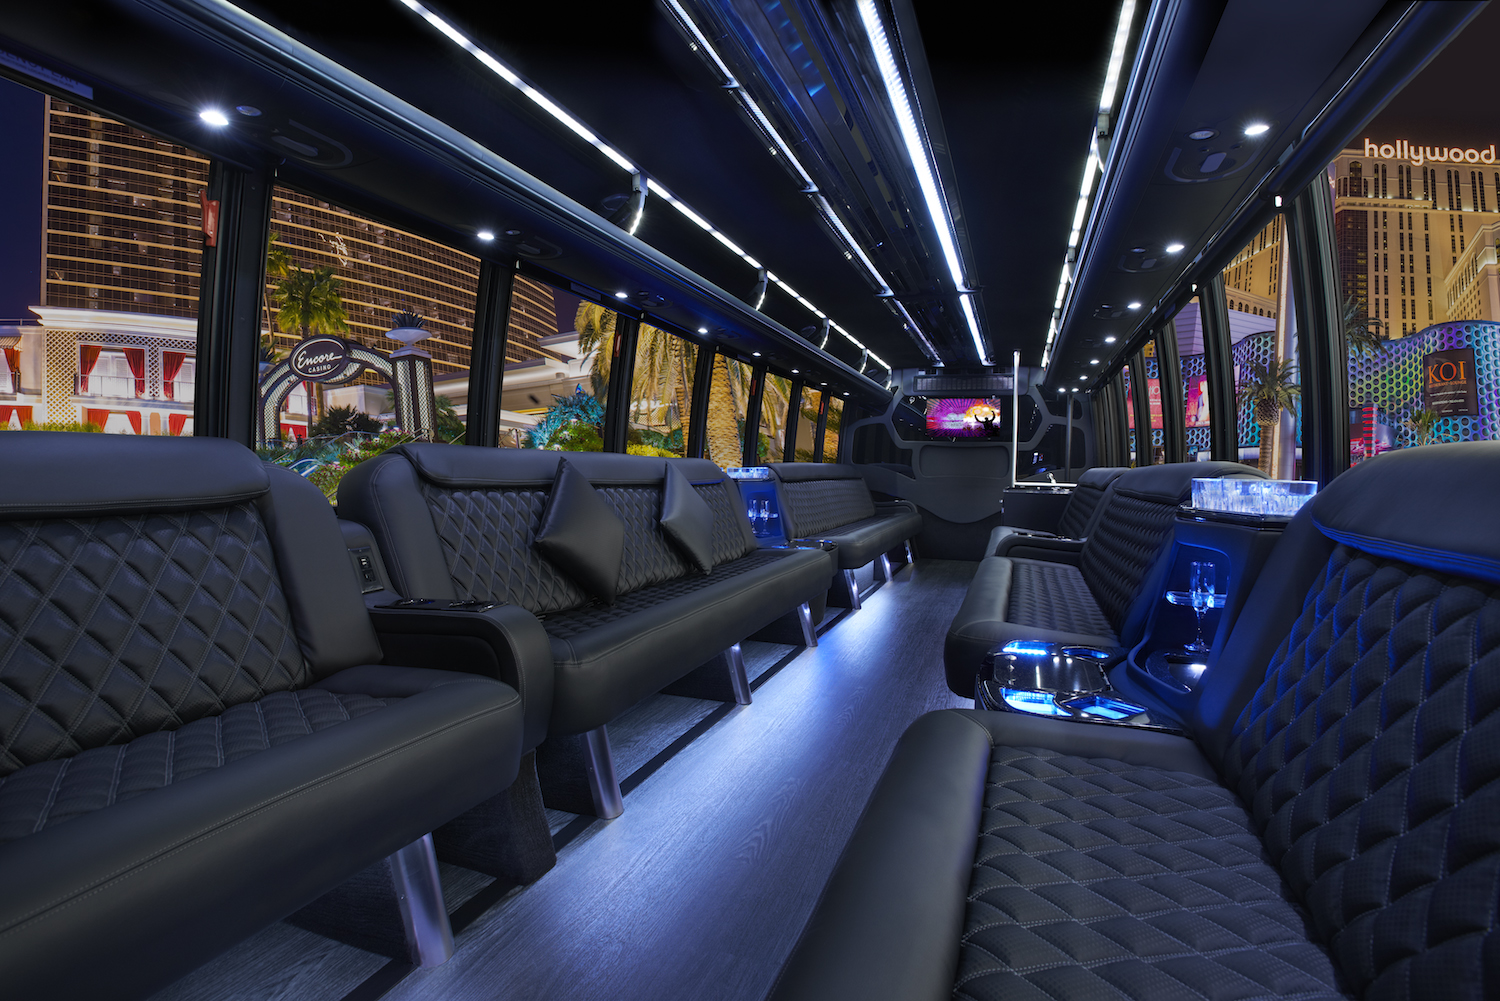 Inside the 40 person party bus with restroom